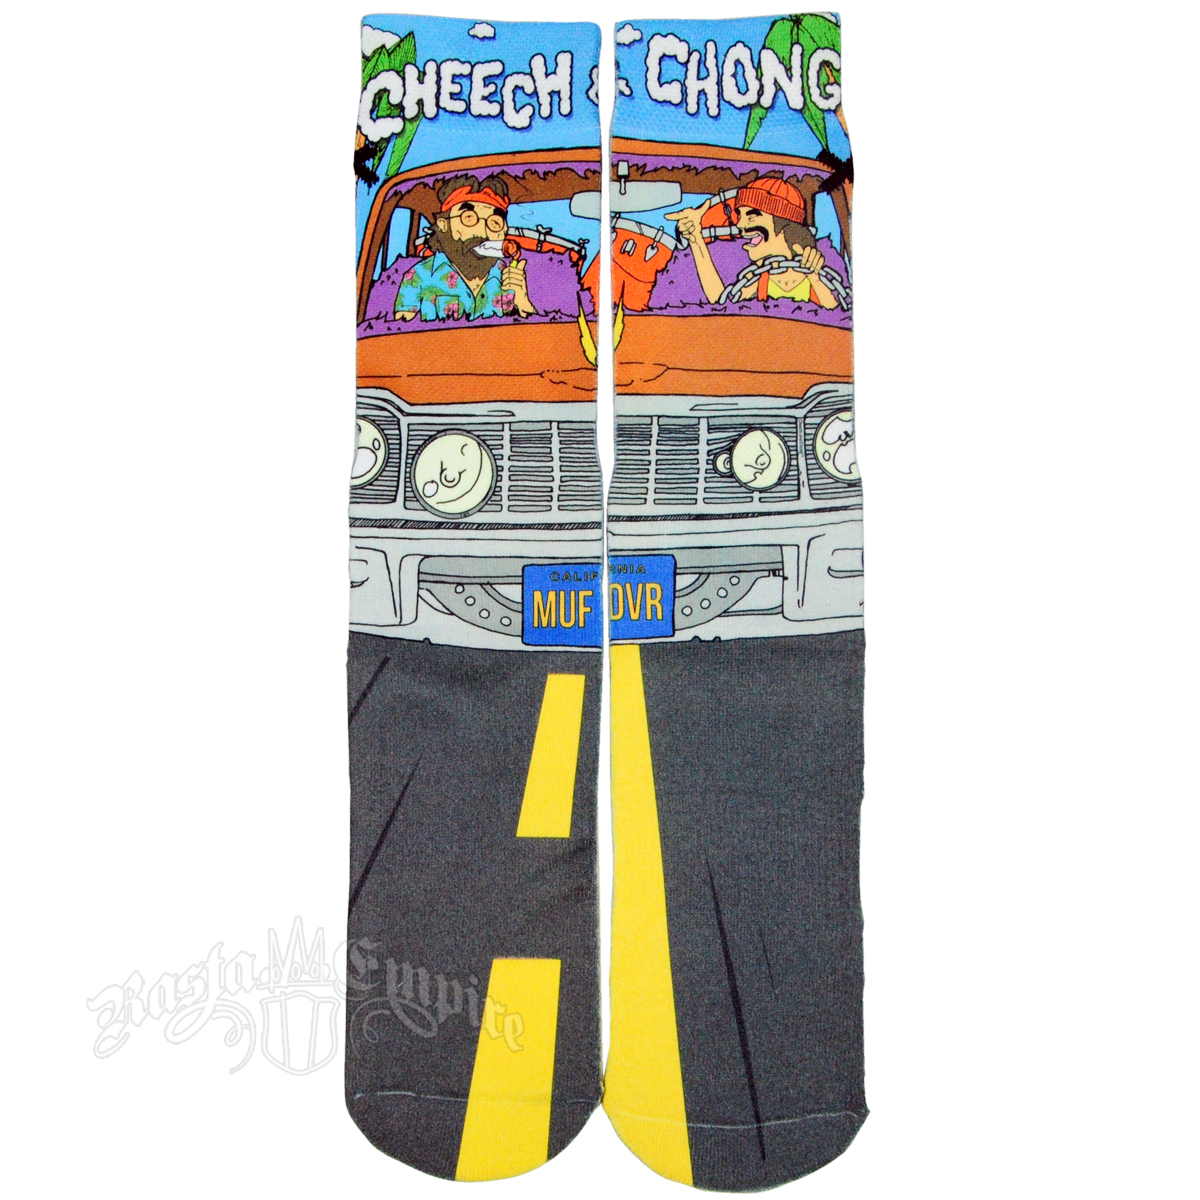 Jamaican sandals shoes - Cheech And Chong Up In Smoke Socks